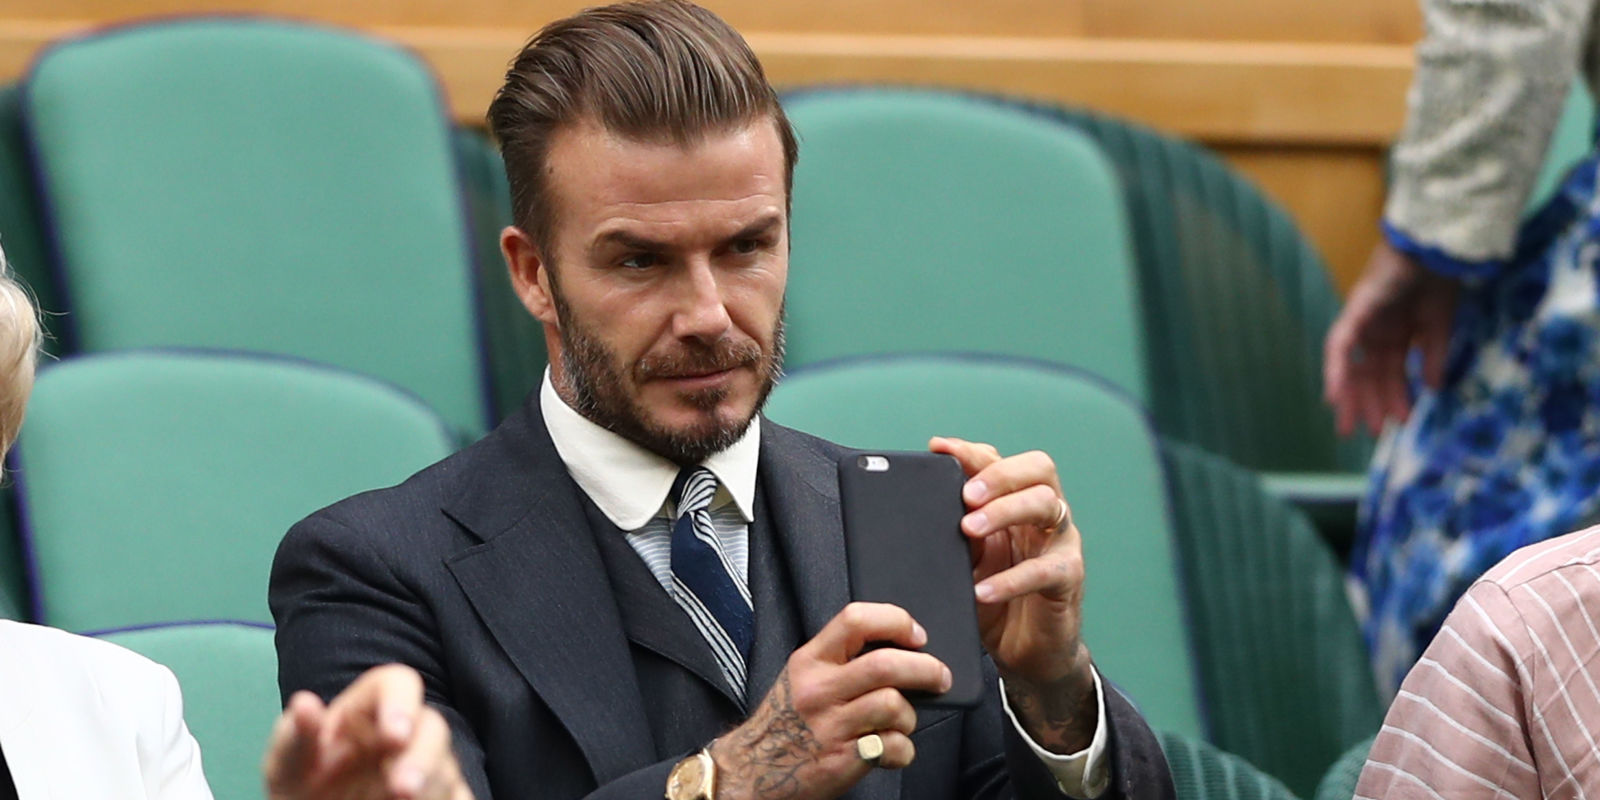 david beckham cellphone while driving gets him banned